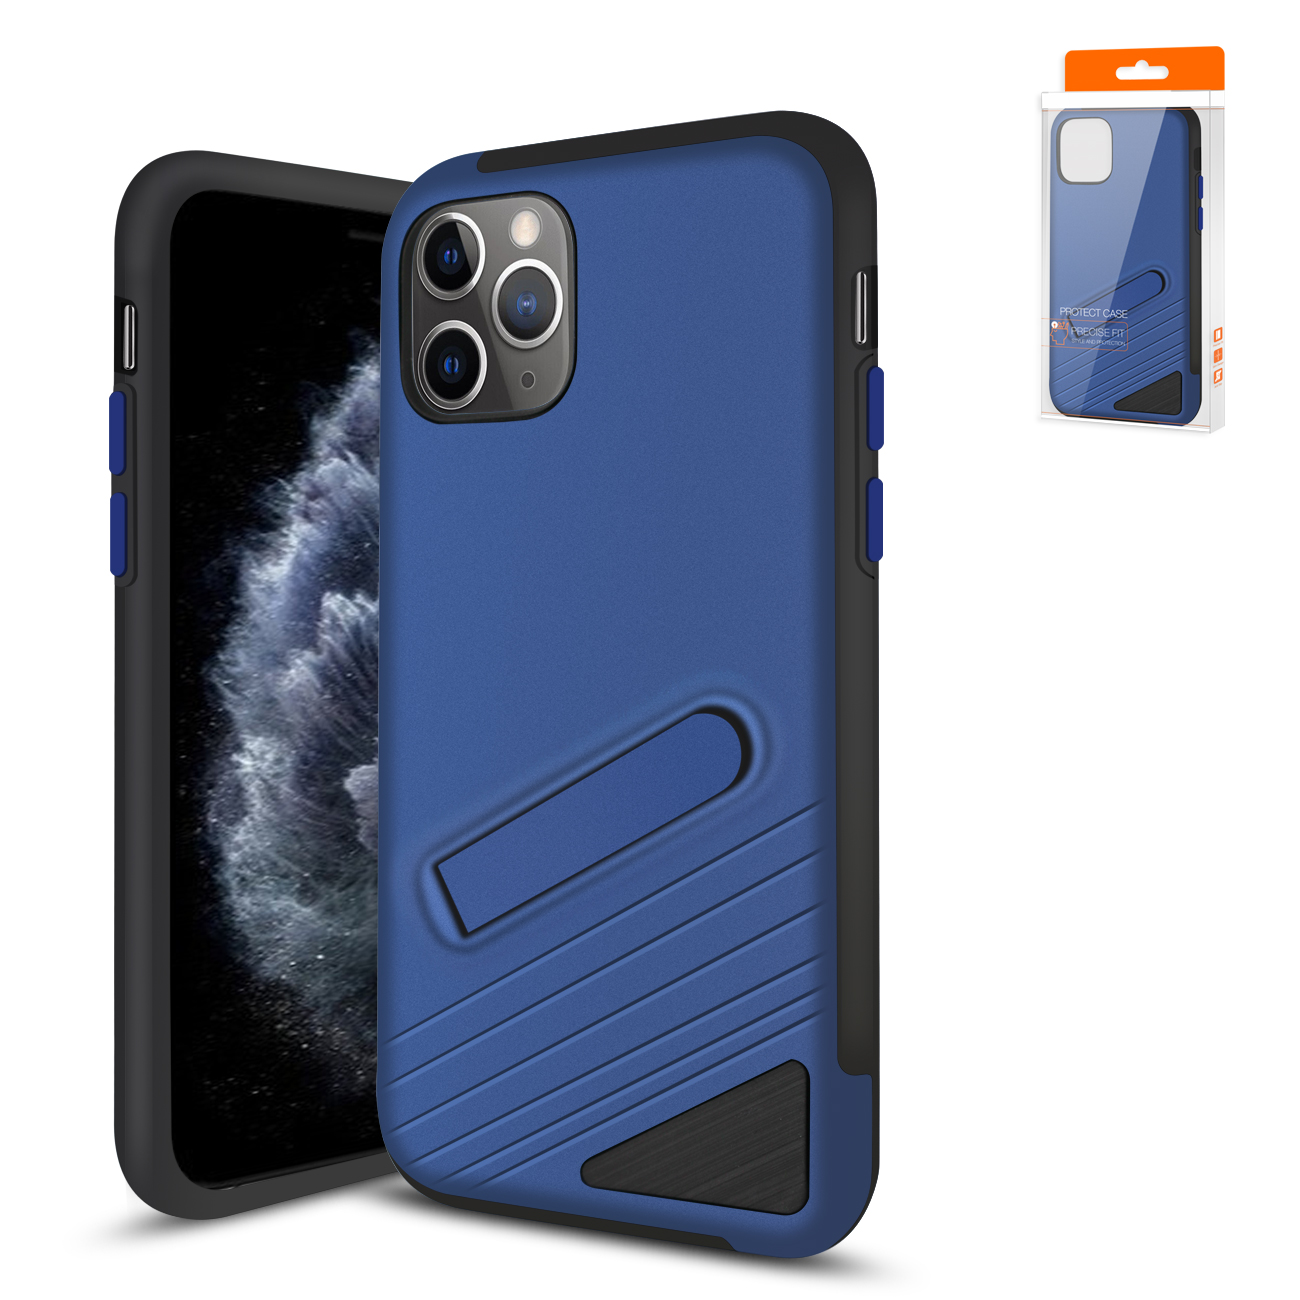 Apple iPhone 11 Pro Max Armor Cases In Navy